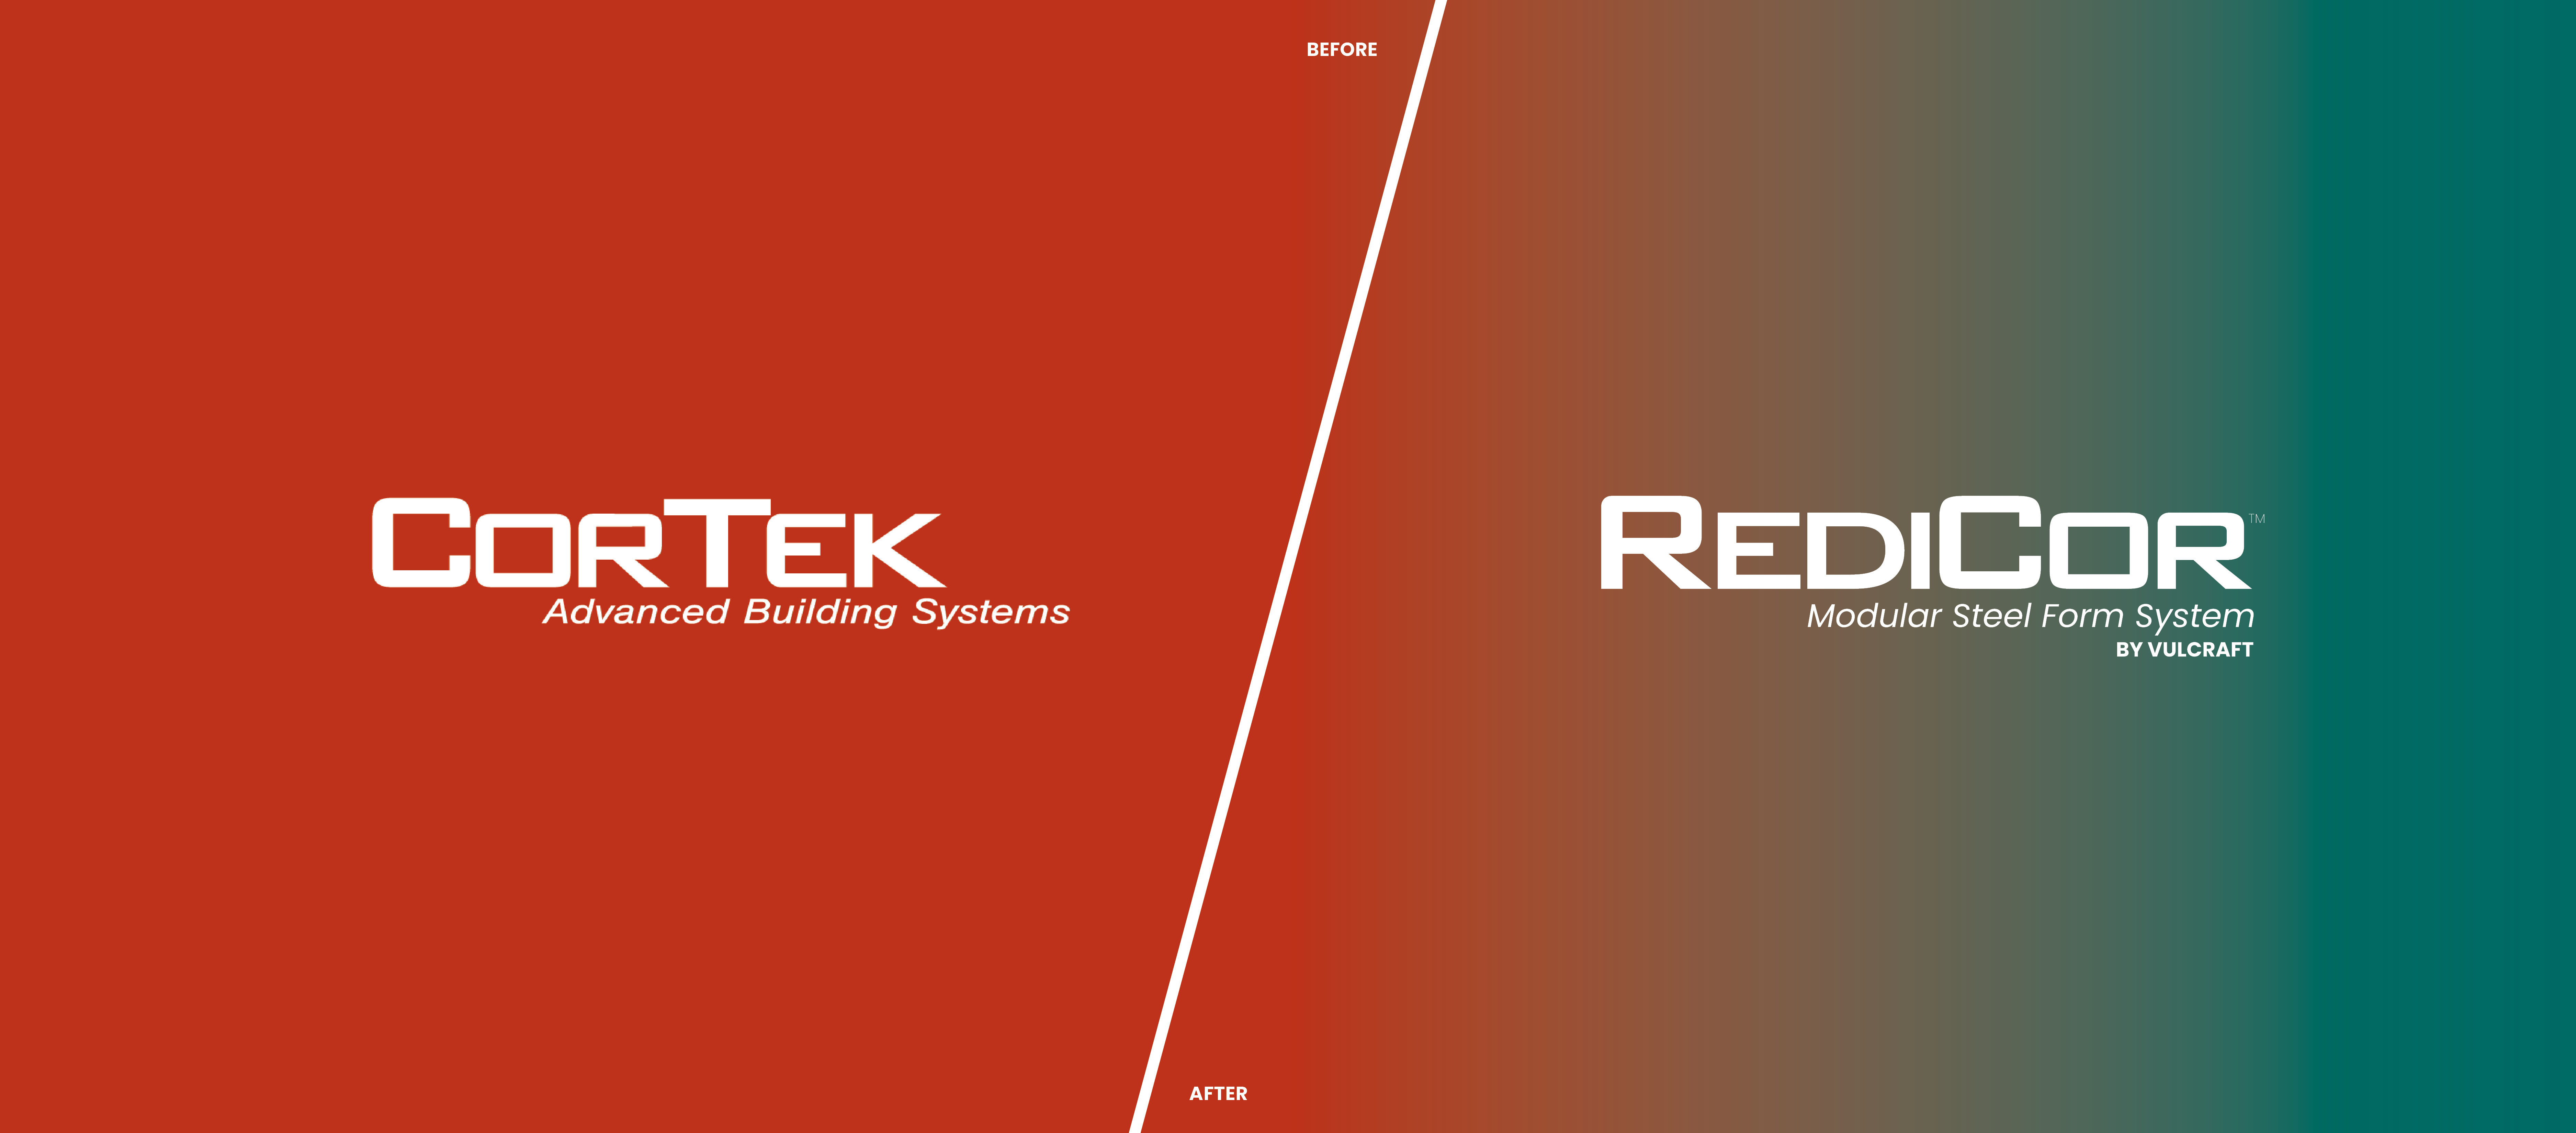 RediCor rebranding -- graphic featuring before/after logos